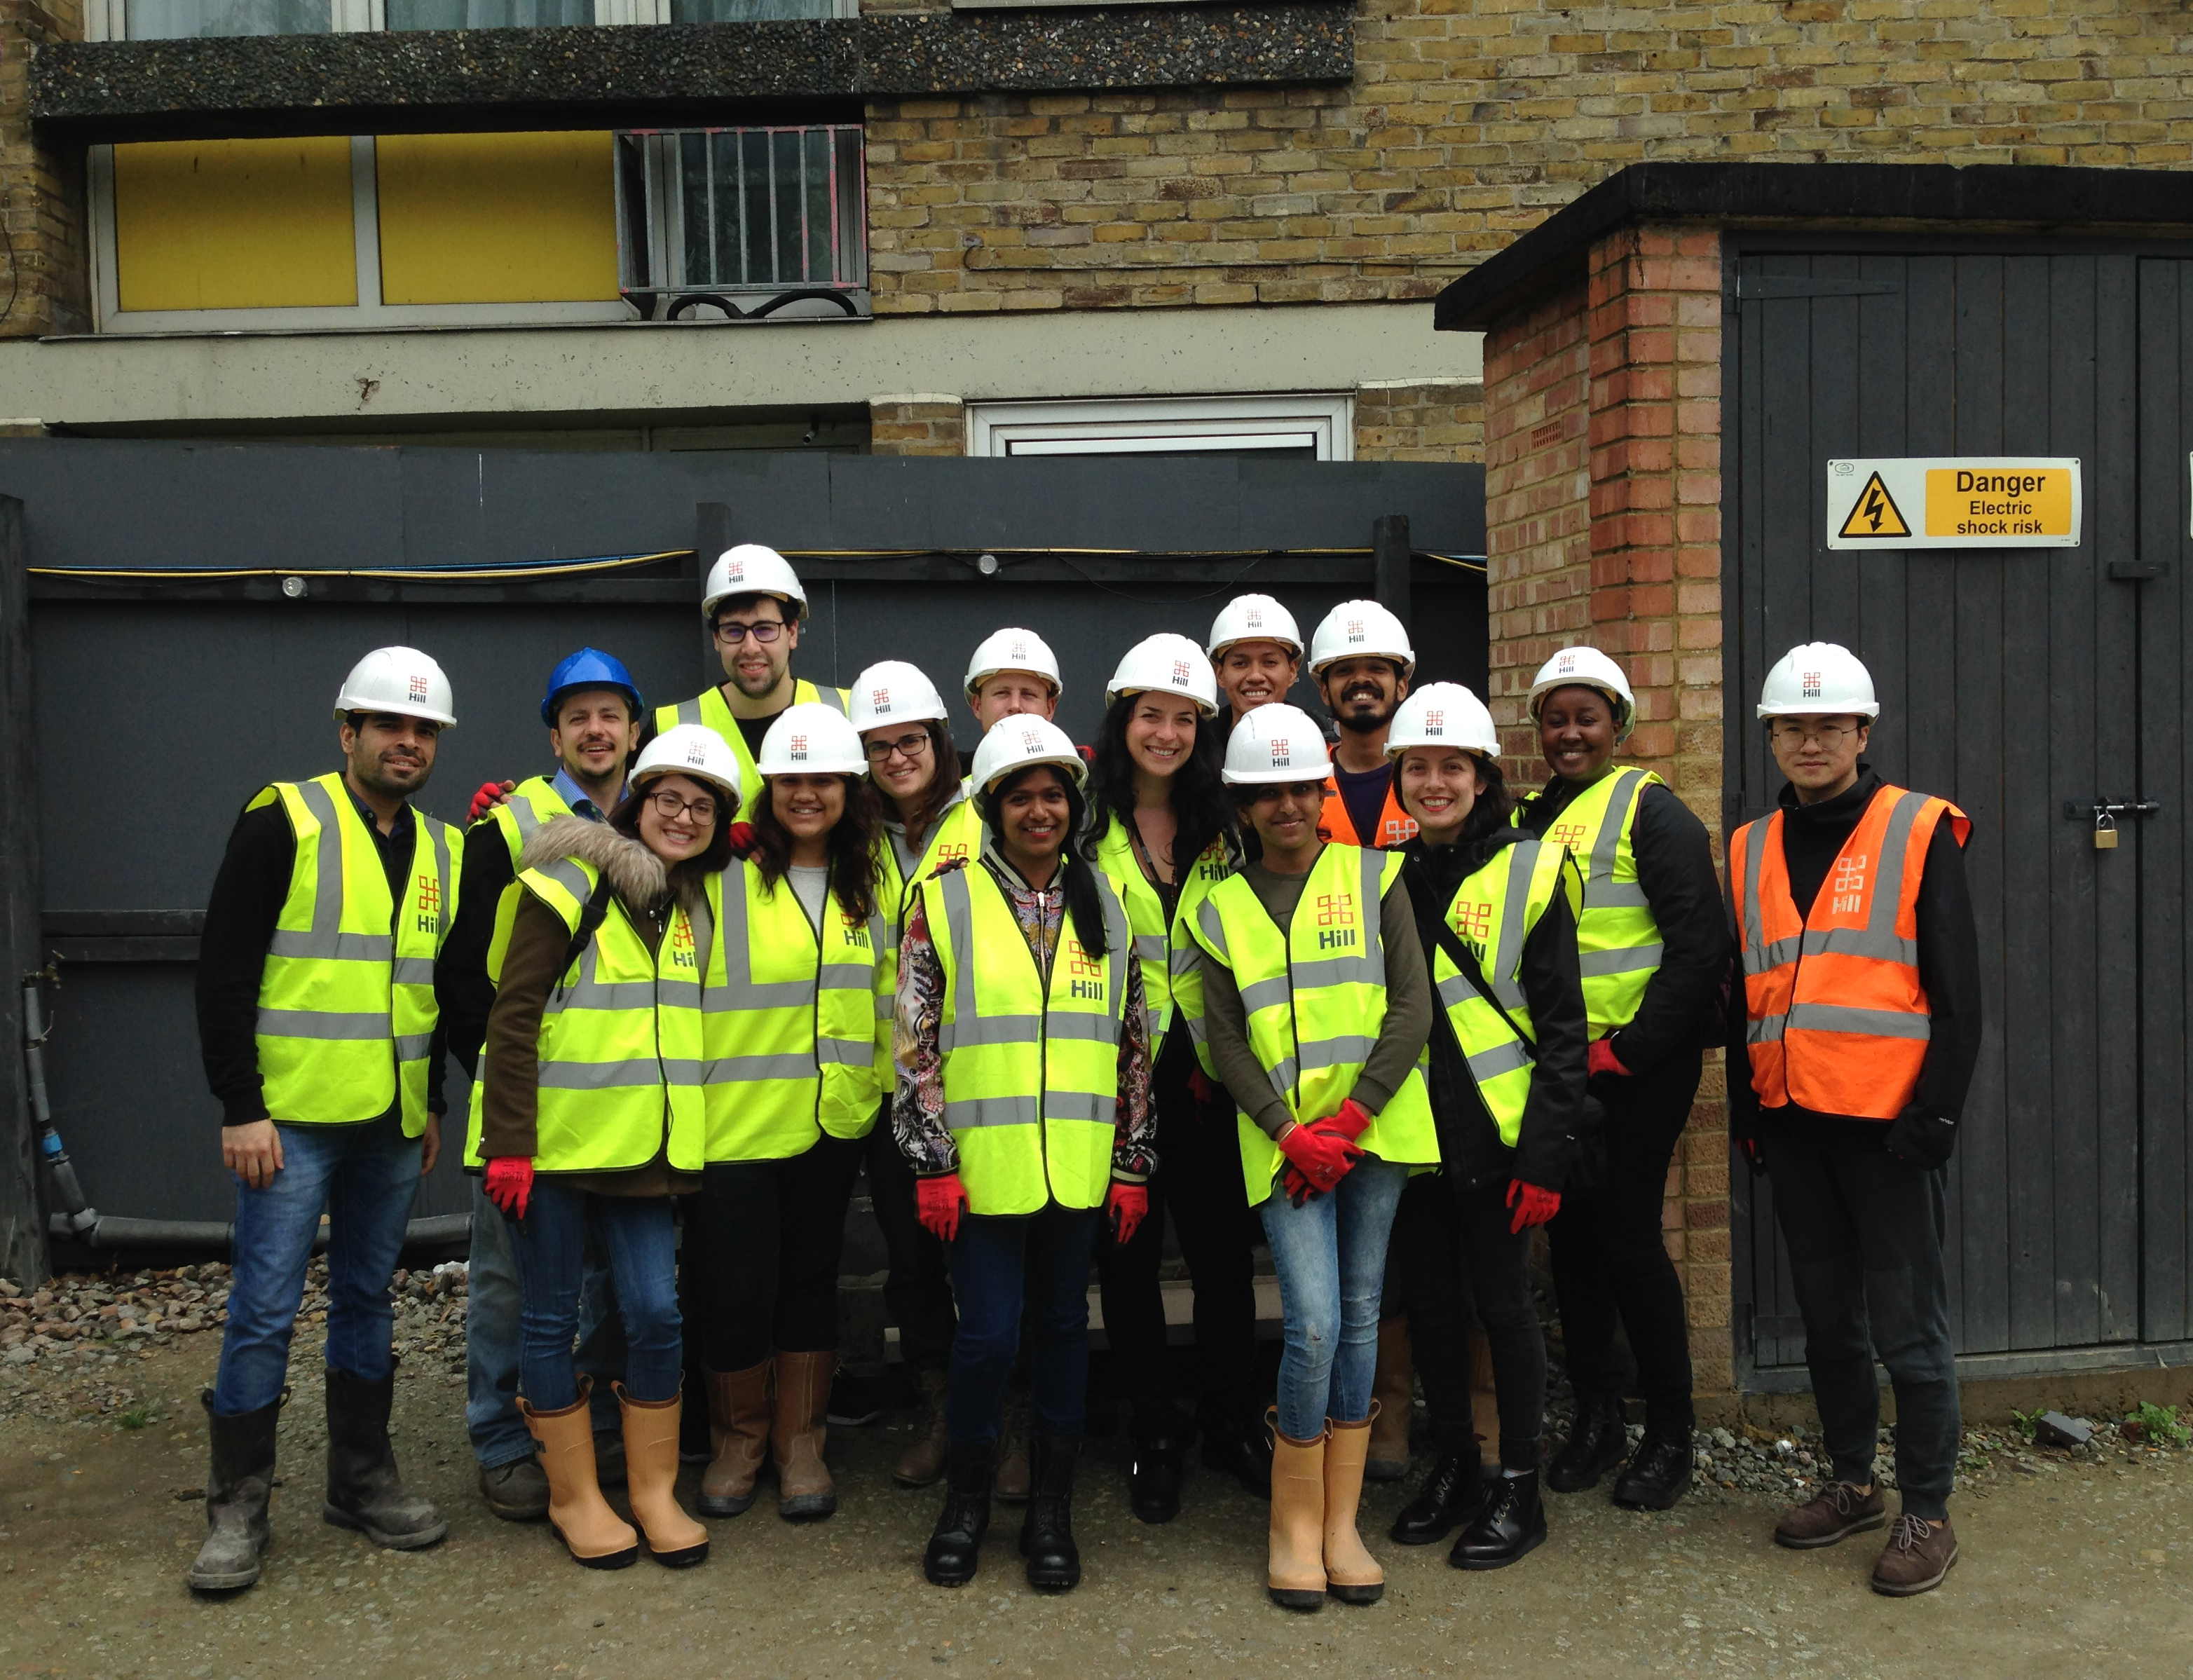 Agar Grove_May 2017_Passivhaus Student Competition site visit